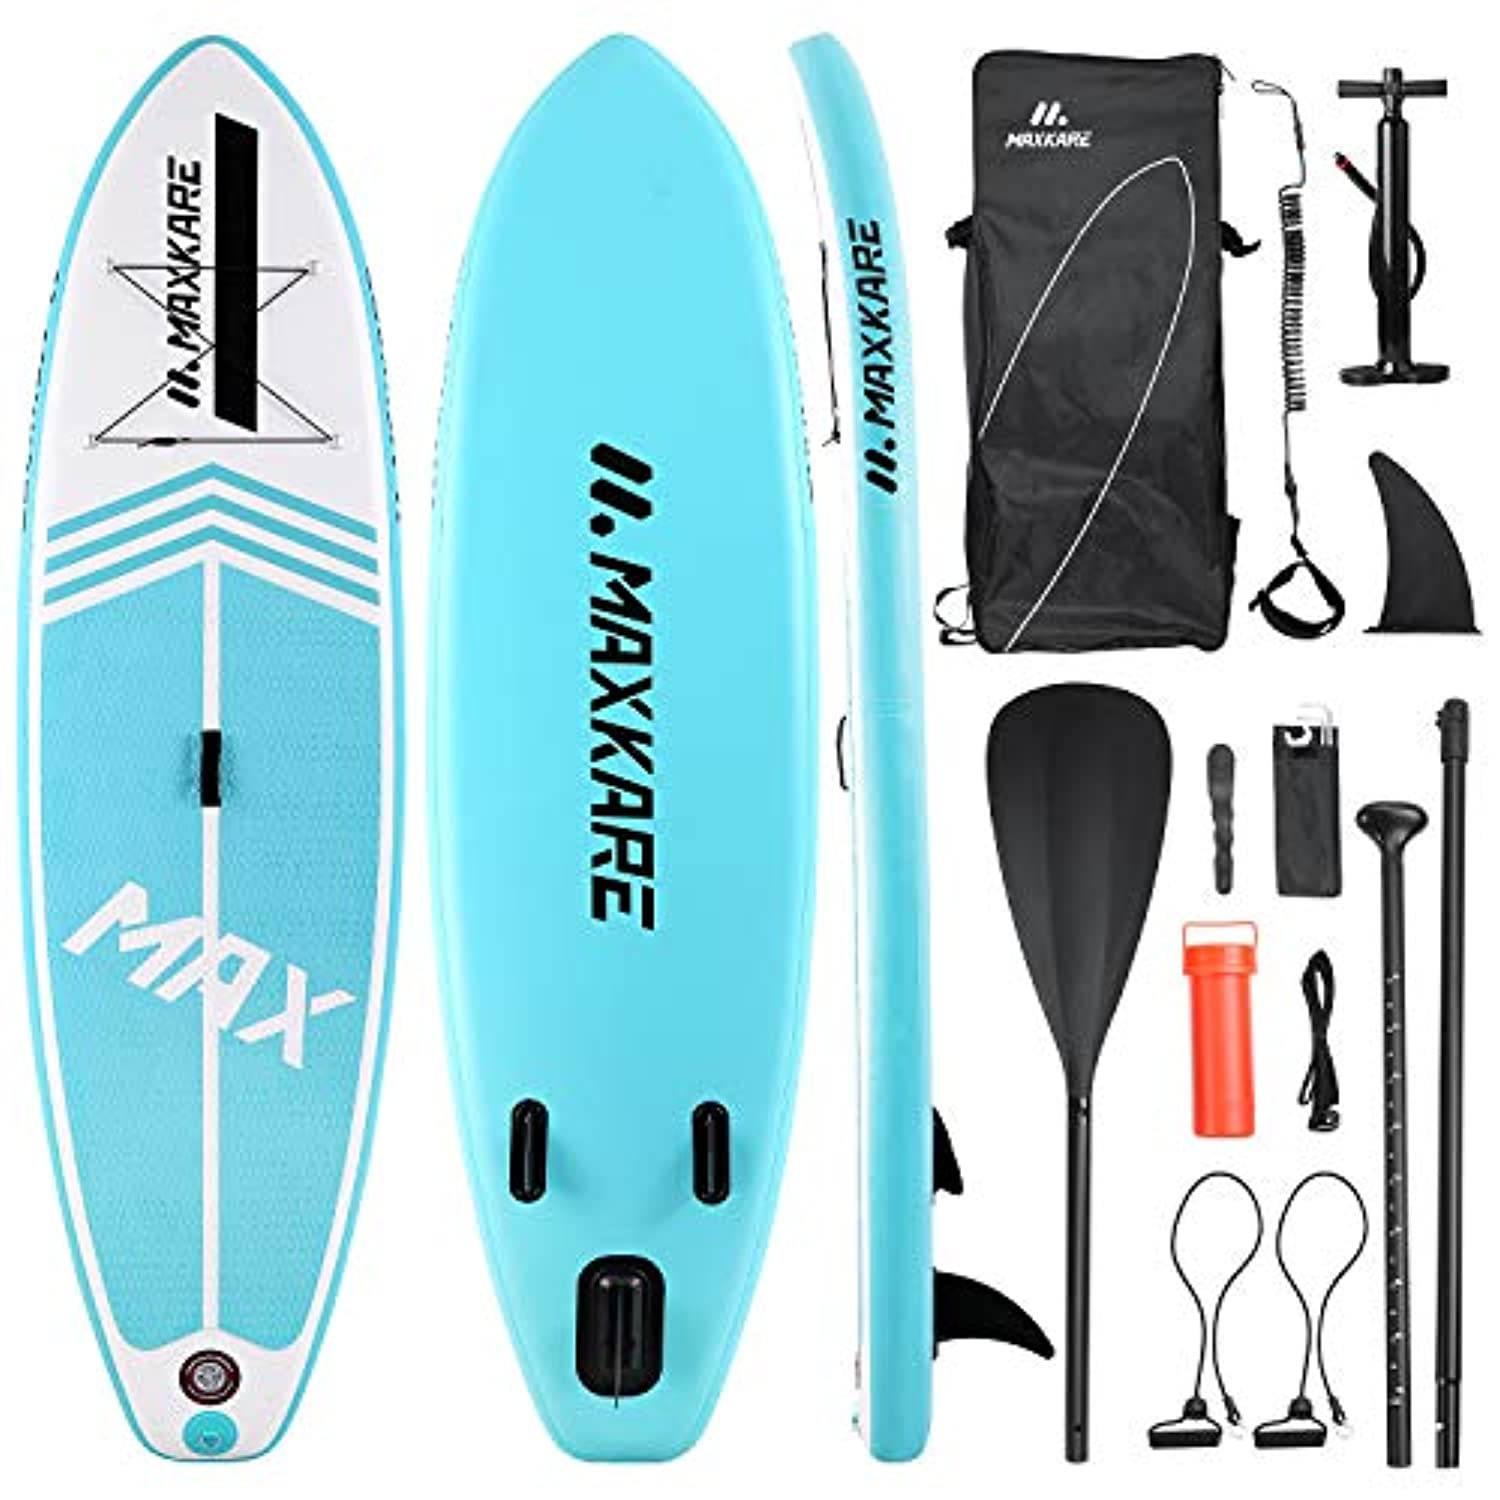 Maxkare Stand Up Inflatable Paddle Board Sup Paddle Board